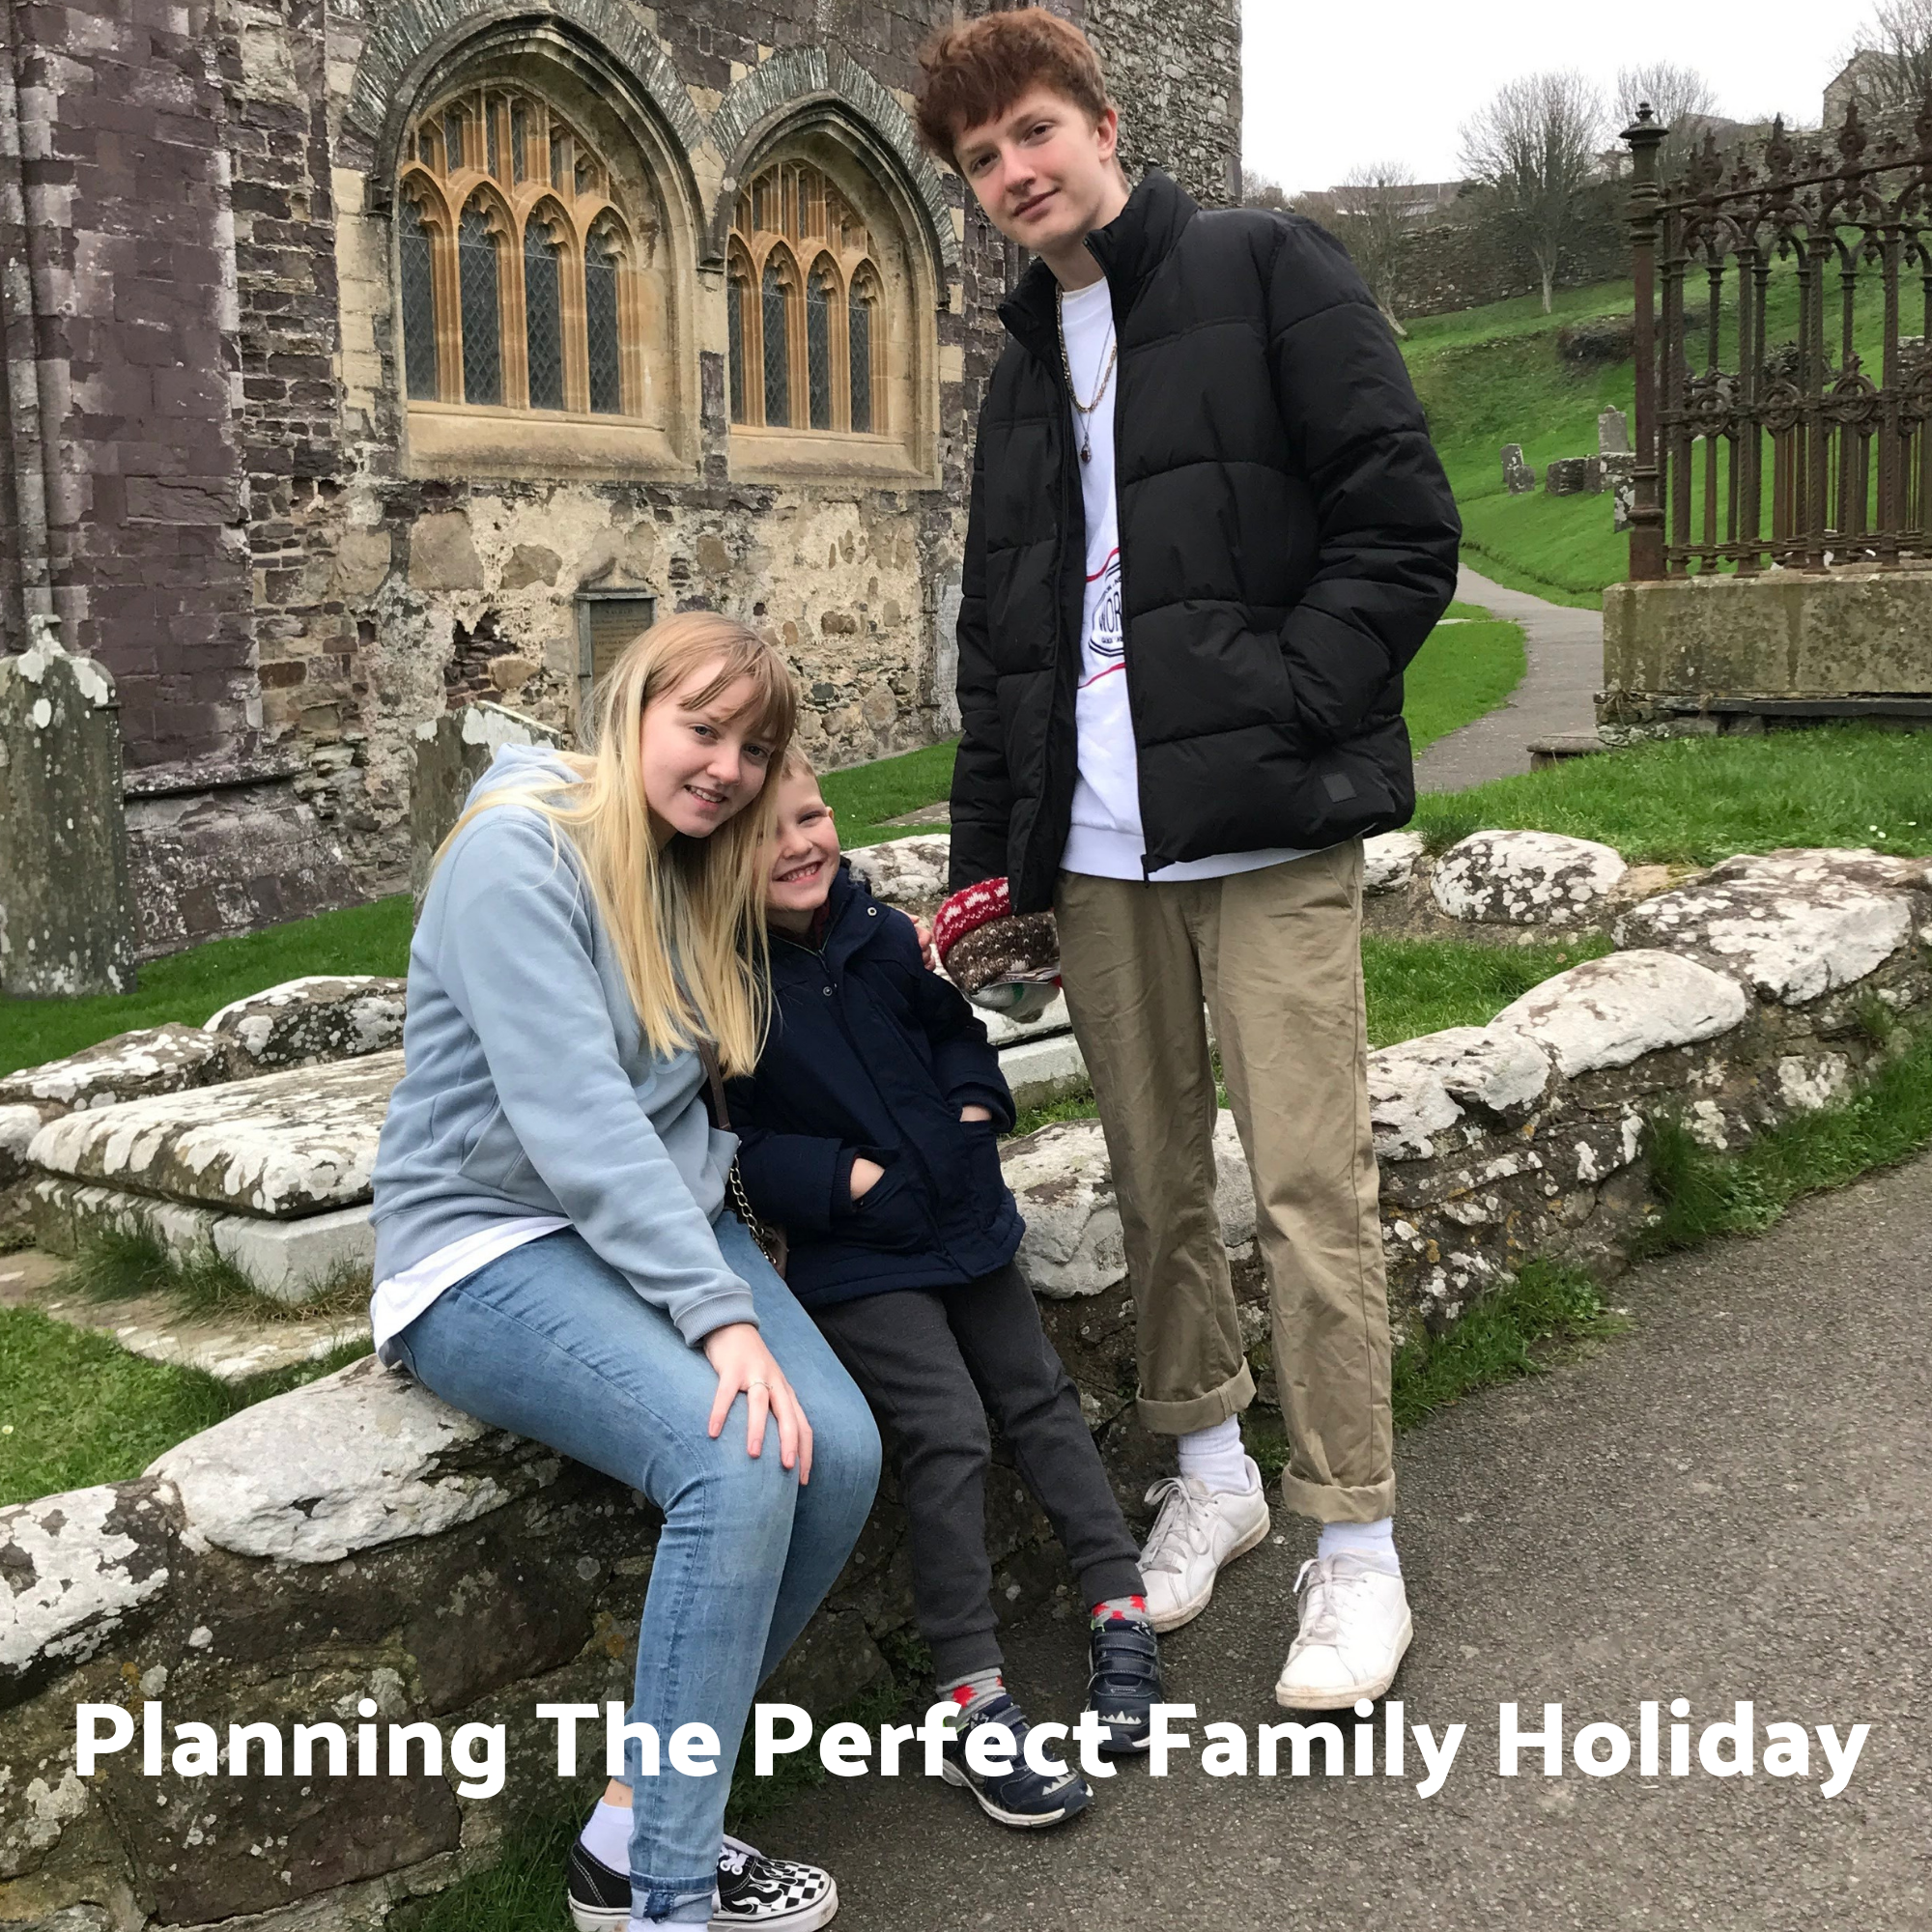 Planning The Perfect Family Holiday